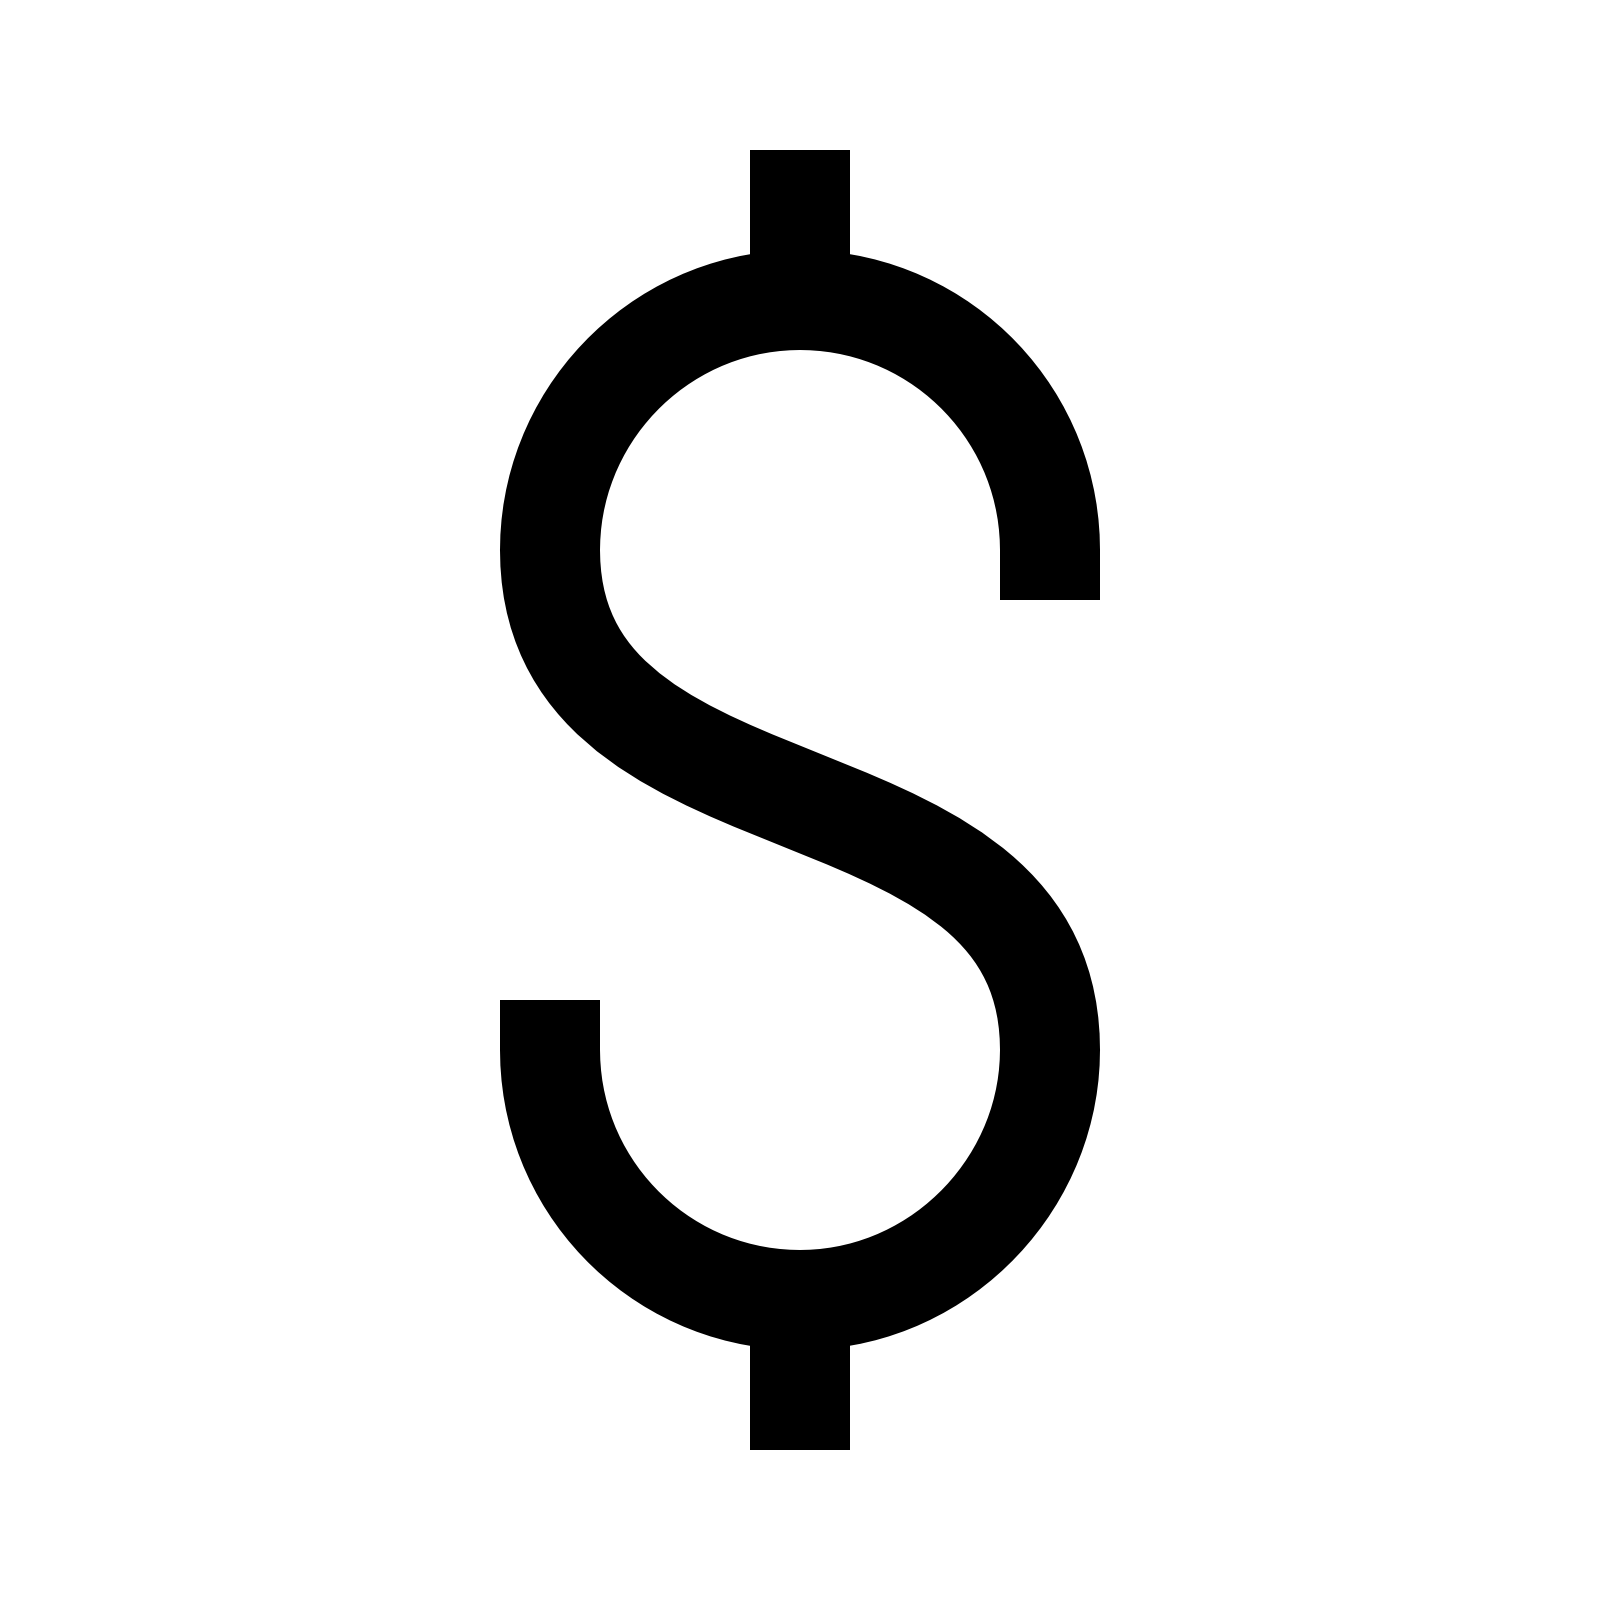 Dollar sign background png.